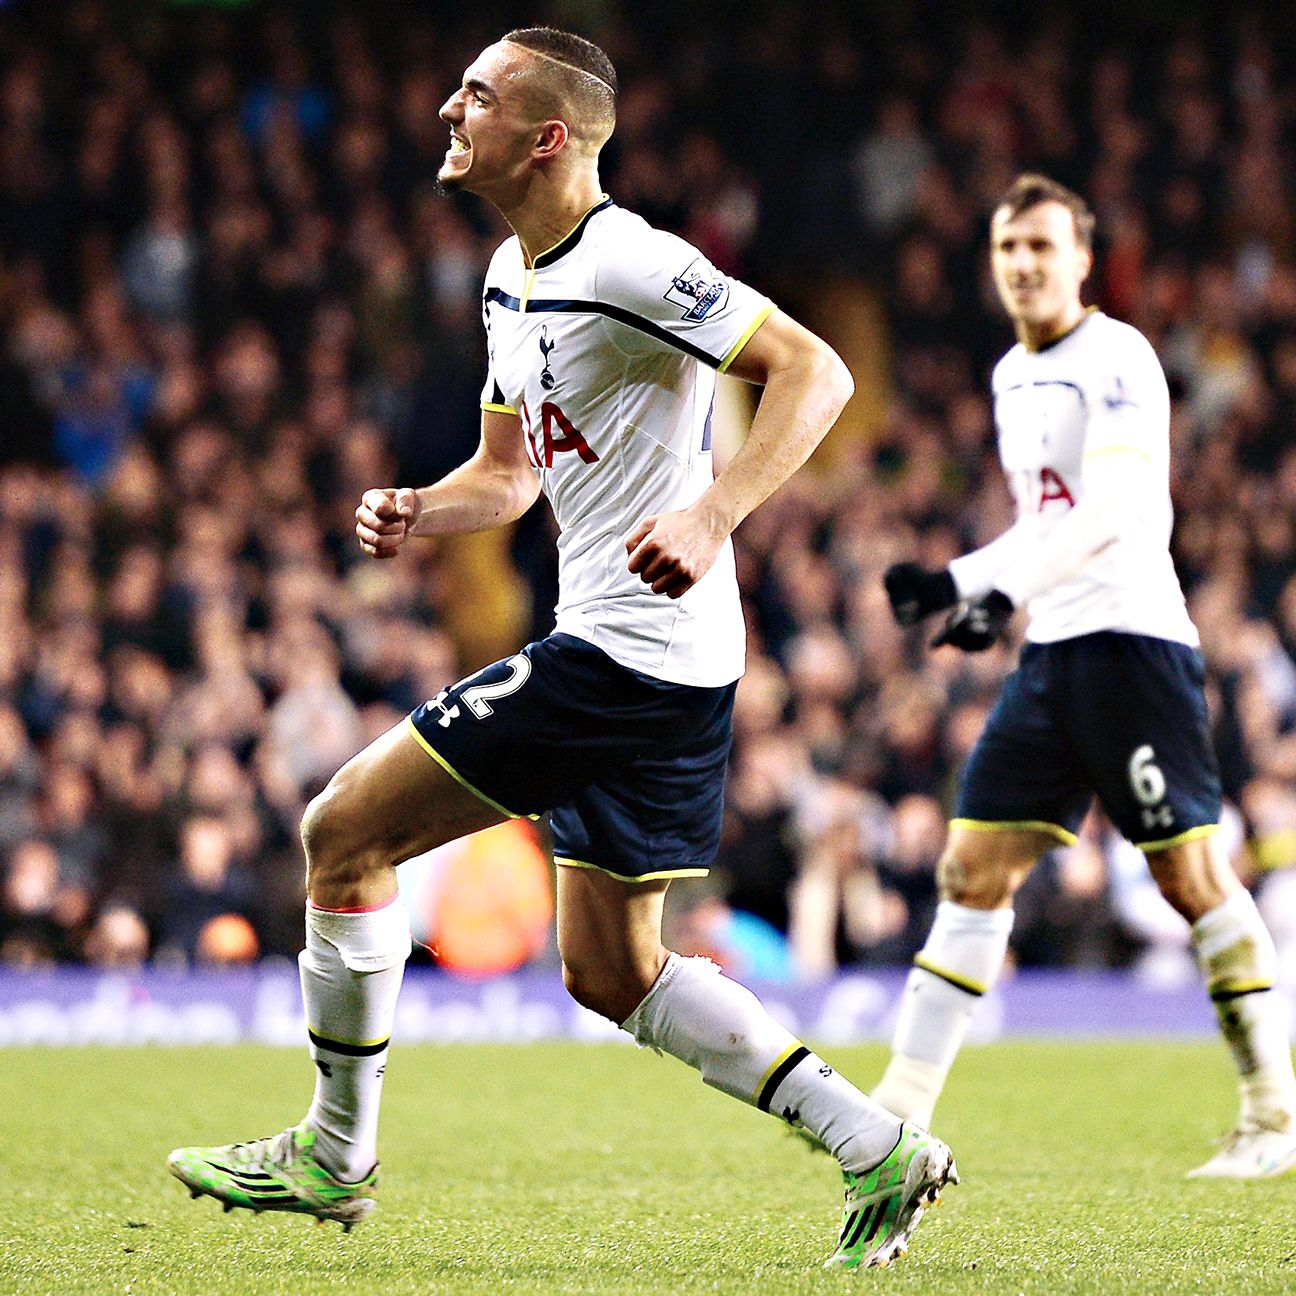 Nabil Bentaleb and Spurs head into their weekend Premier League encounter versus Burnley on the heels of an emphatic 4-0 cup win over Newcastle.